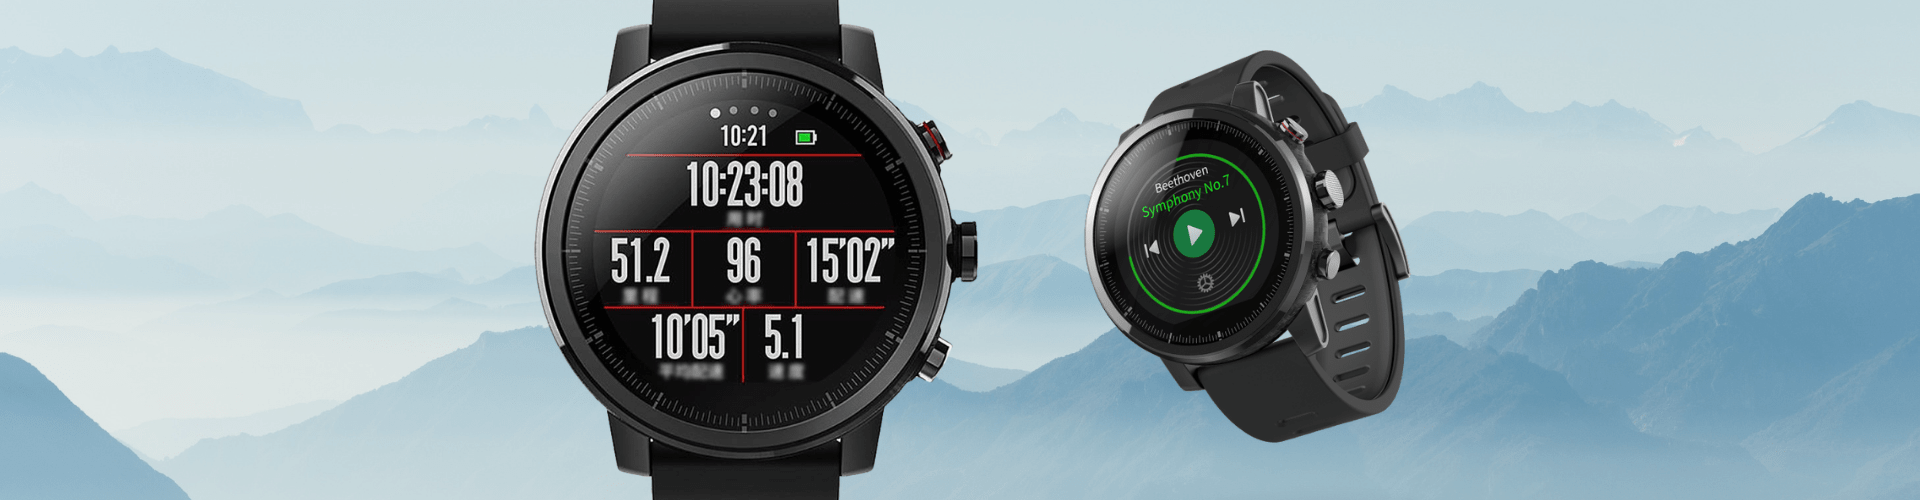 Características de Amazfit Stratos 2 SmartWatch Sports con GPS PPG Heart Rate Monitor